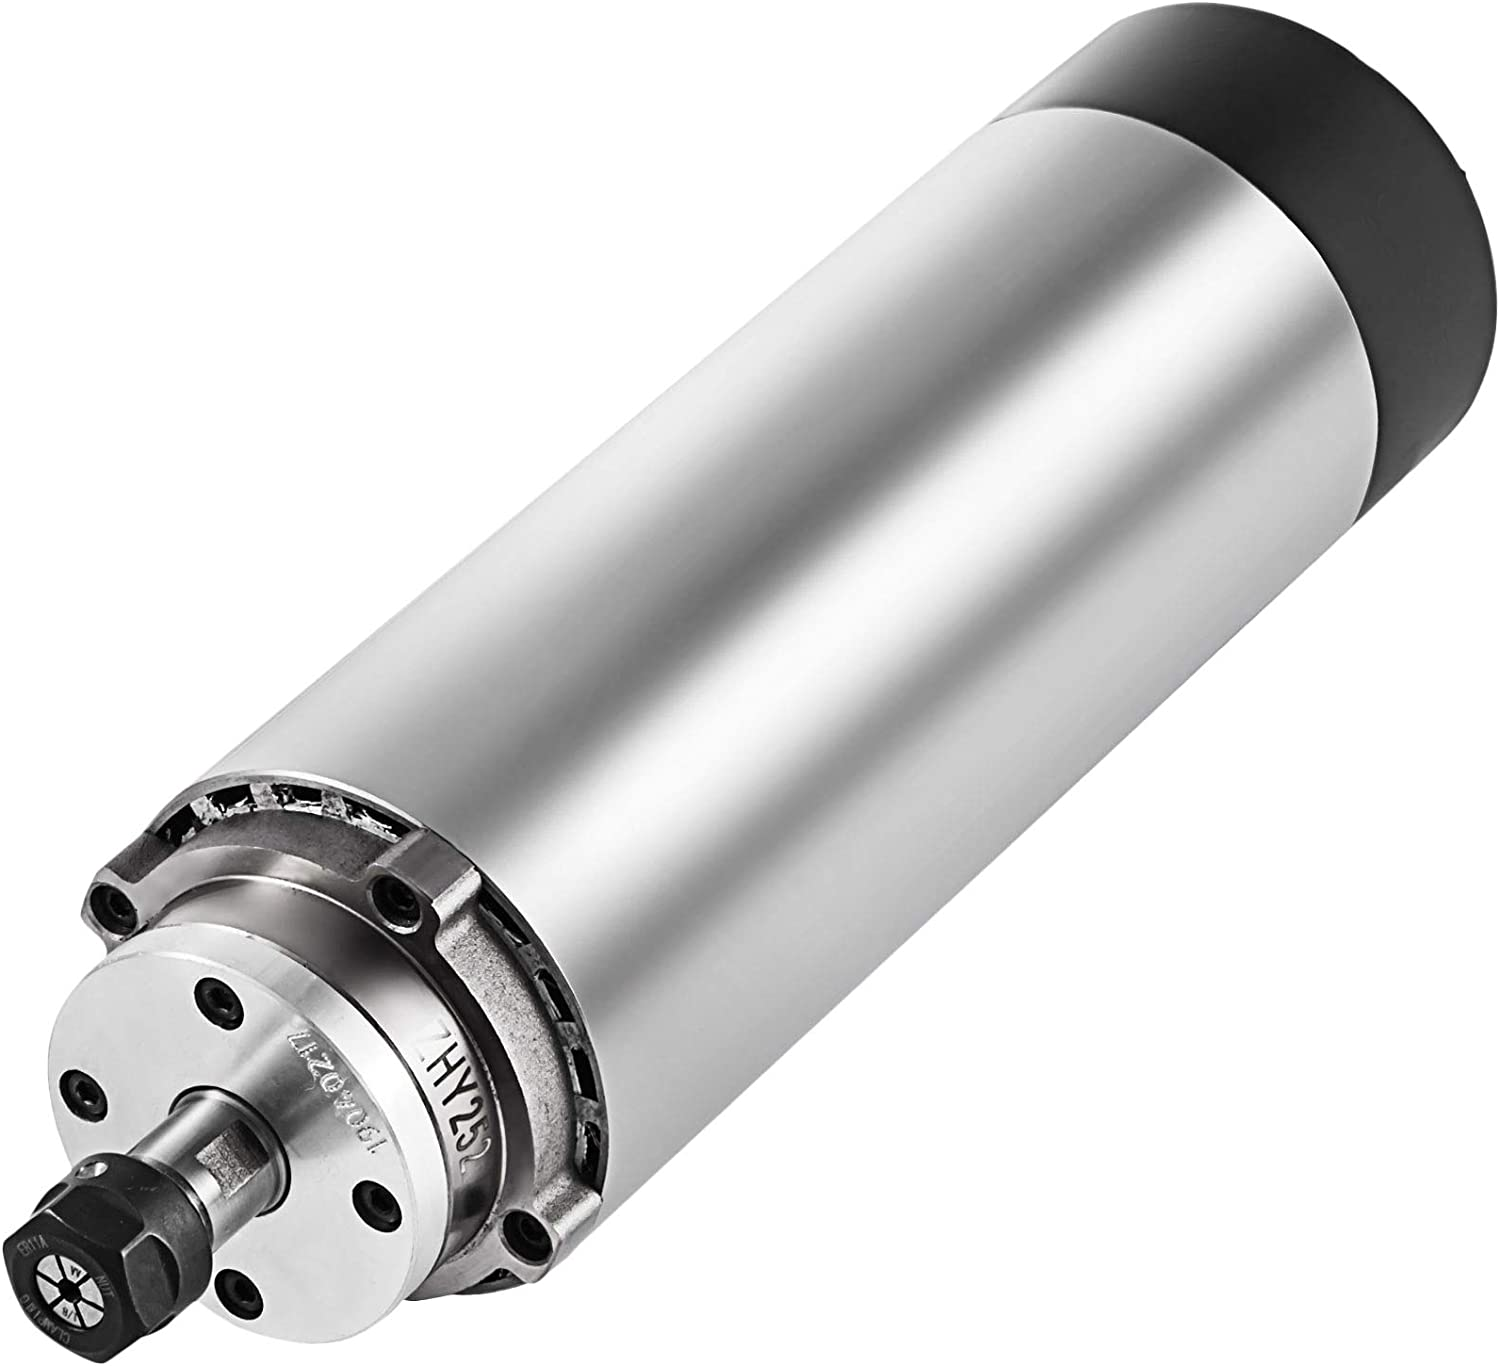 Mophorn CNC Spindle Motor 1.5KW Direct Super popular specialty store store wit 2HP Air Cooled